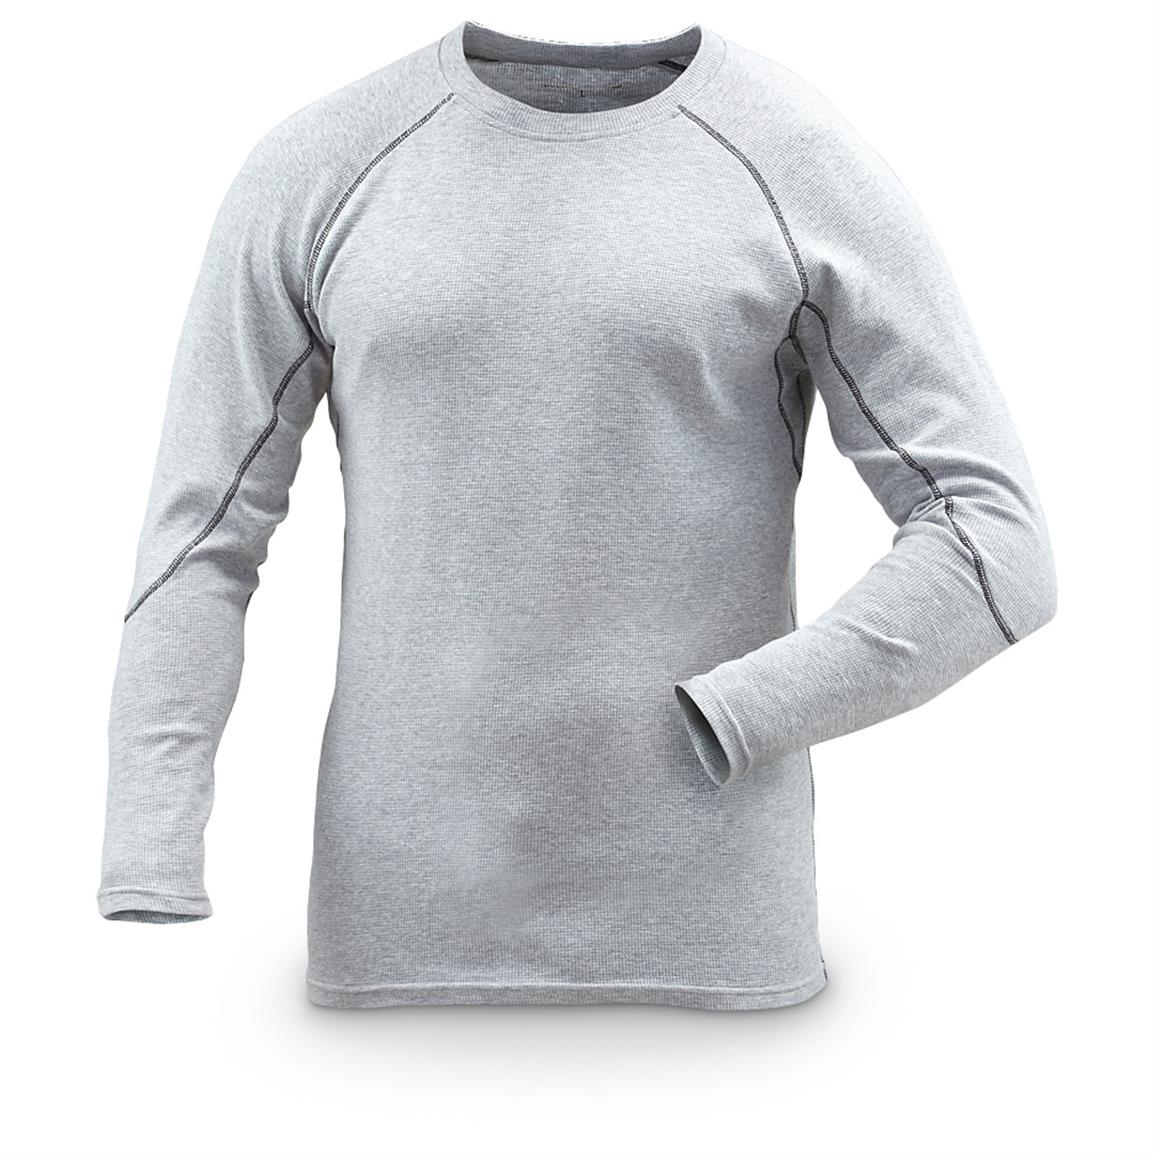 Guide Gear Men's Midweight Thermal Base Layer Shirts, 2 Pack, Gray